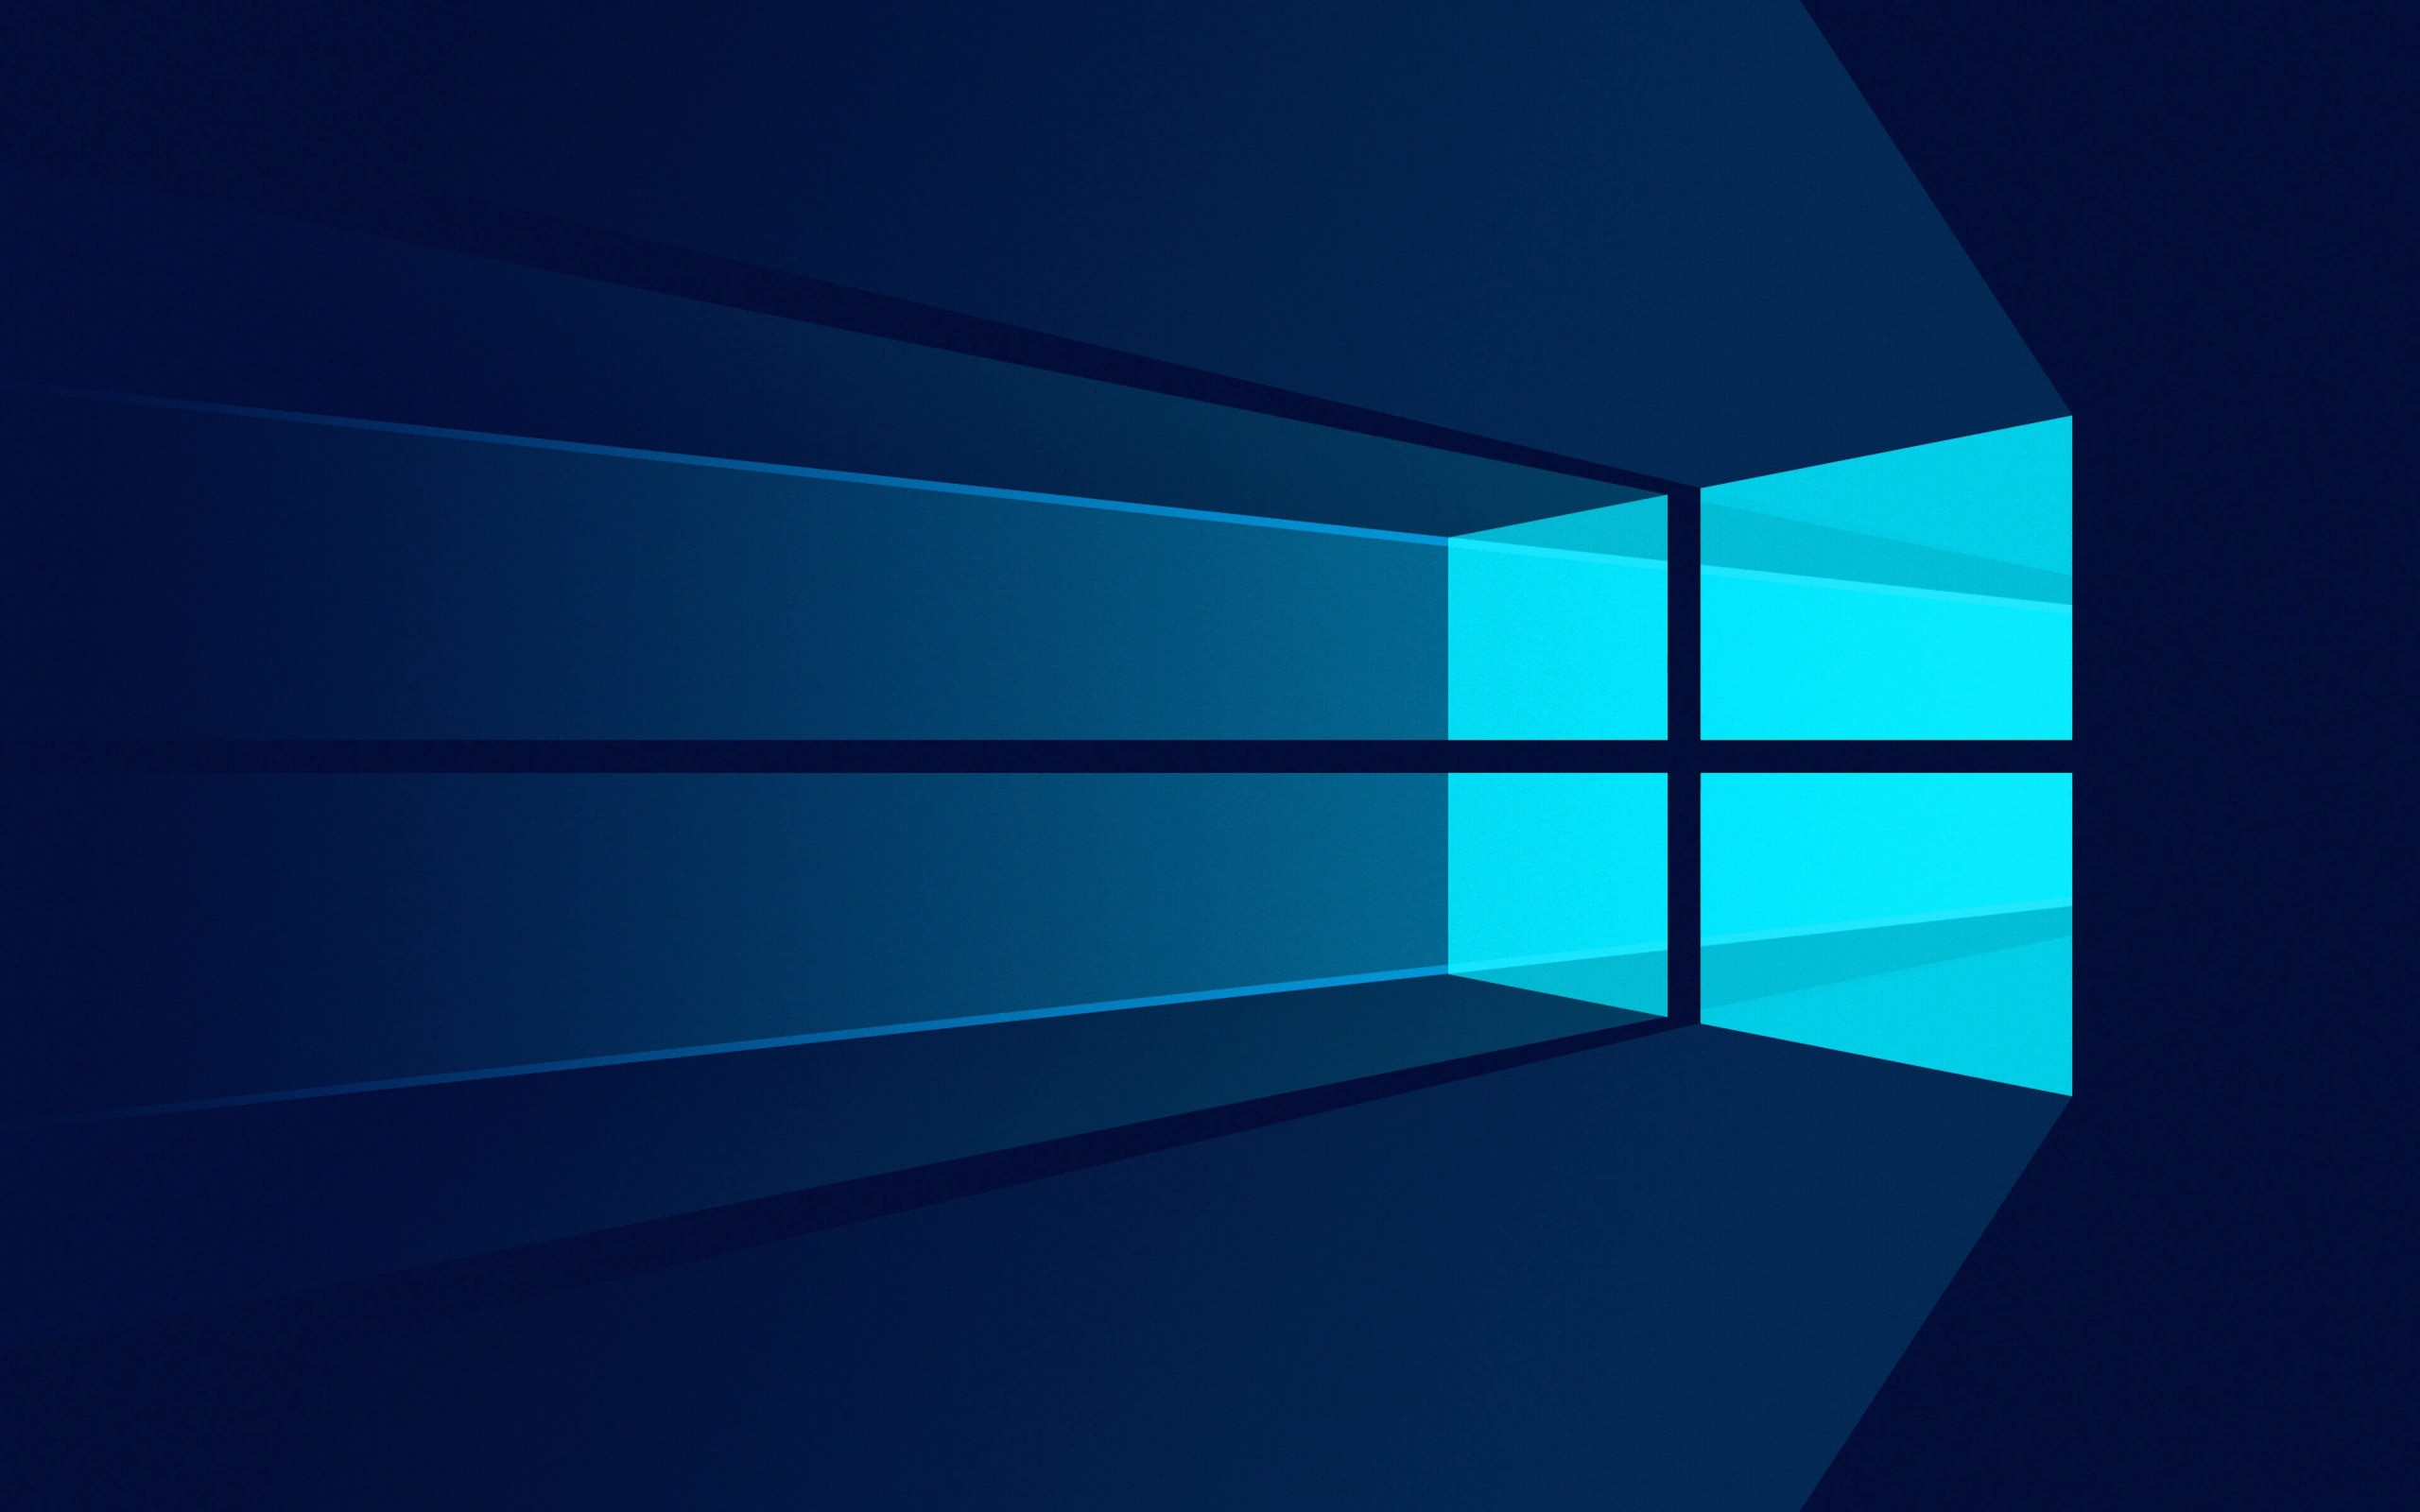 Download Windows 10 Flat HD wallpaper for 2560 x 1600 - HDwallpapers ...: hdwallpapers.net/preview/windows-10-flat-wallpaper-for-2560x1600-61...